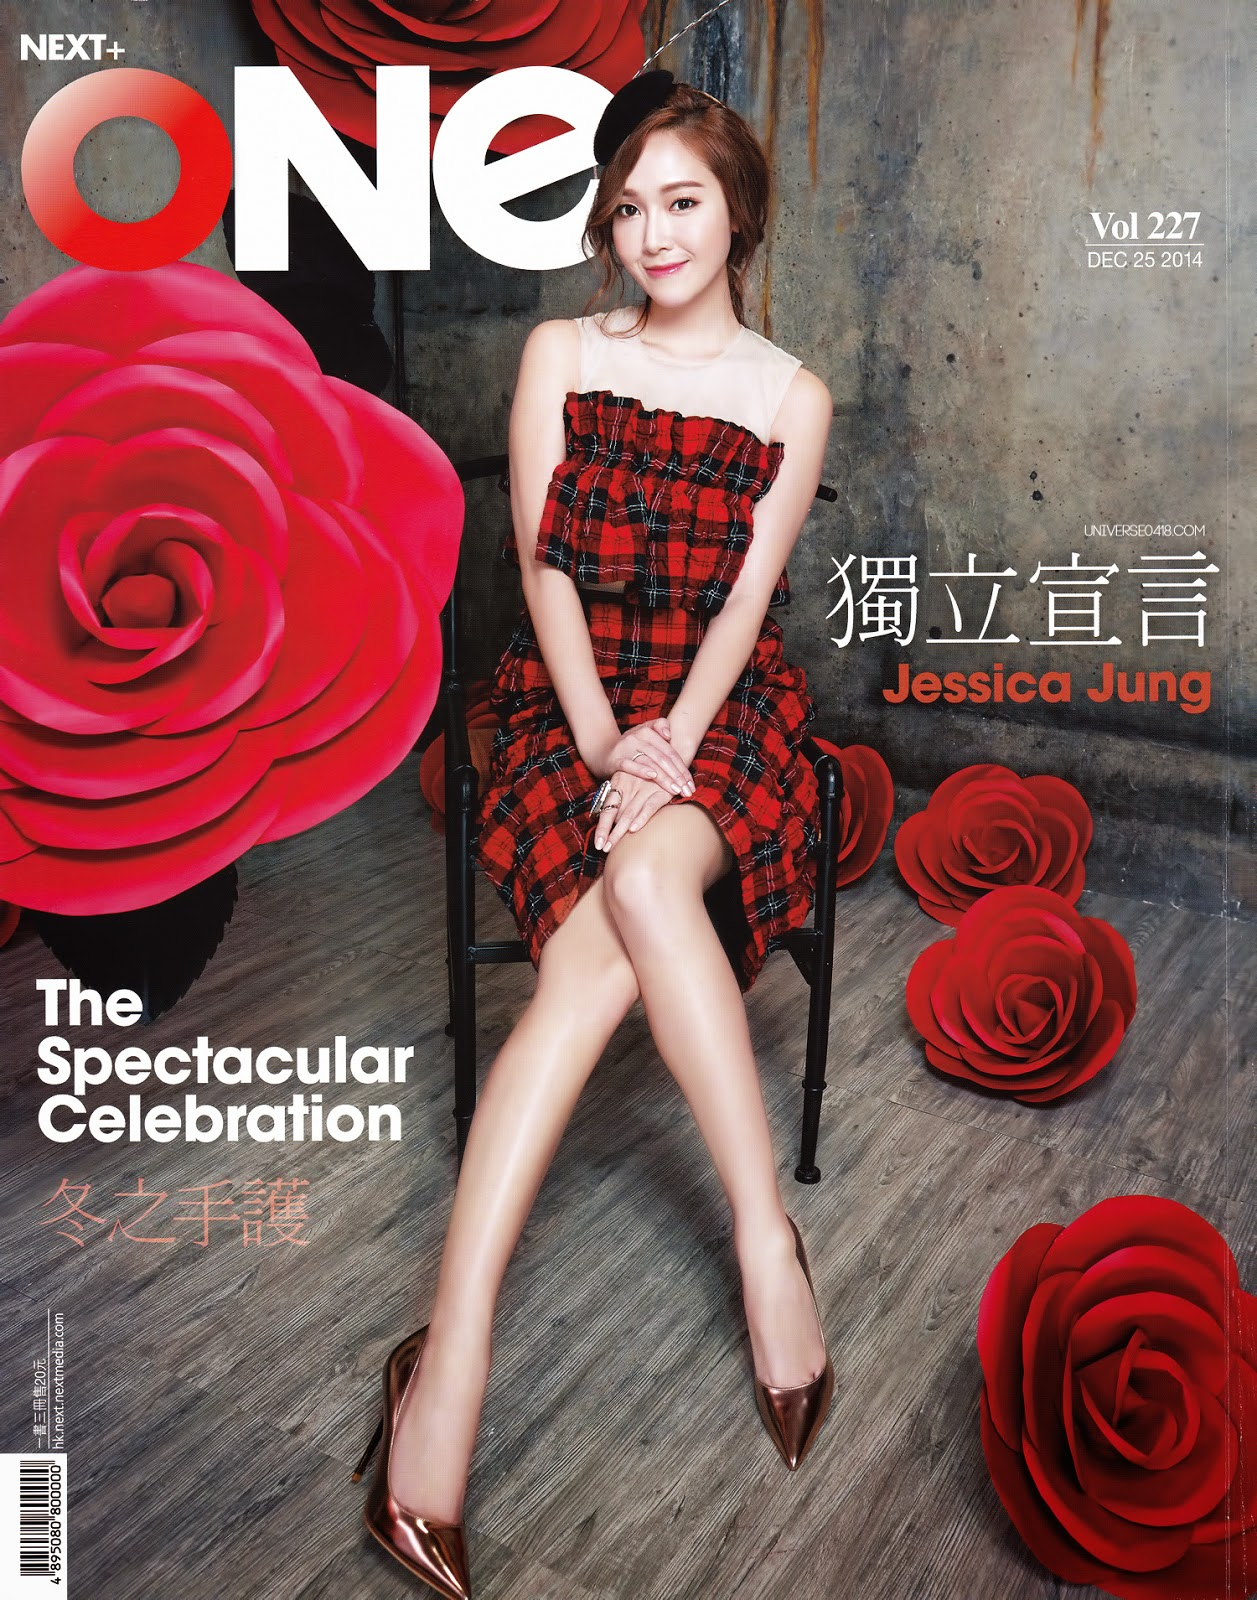 Beautiful singer-songwriter, actress, model and fashion designer Jessica Jung on the cover of One magazine